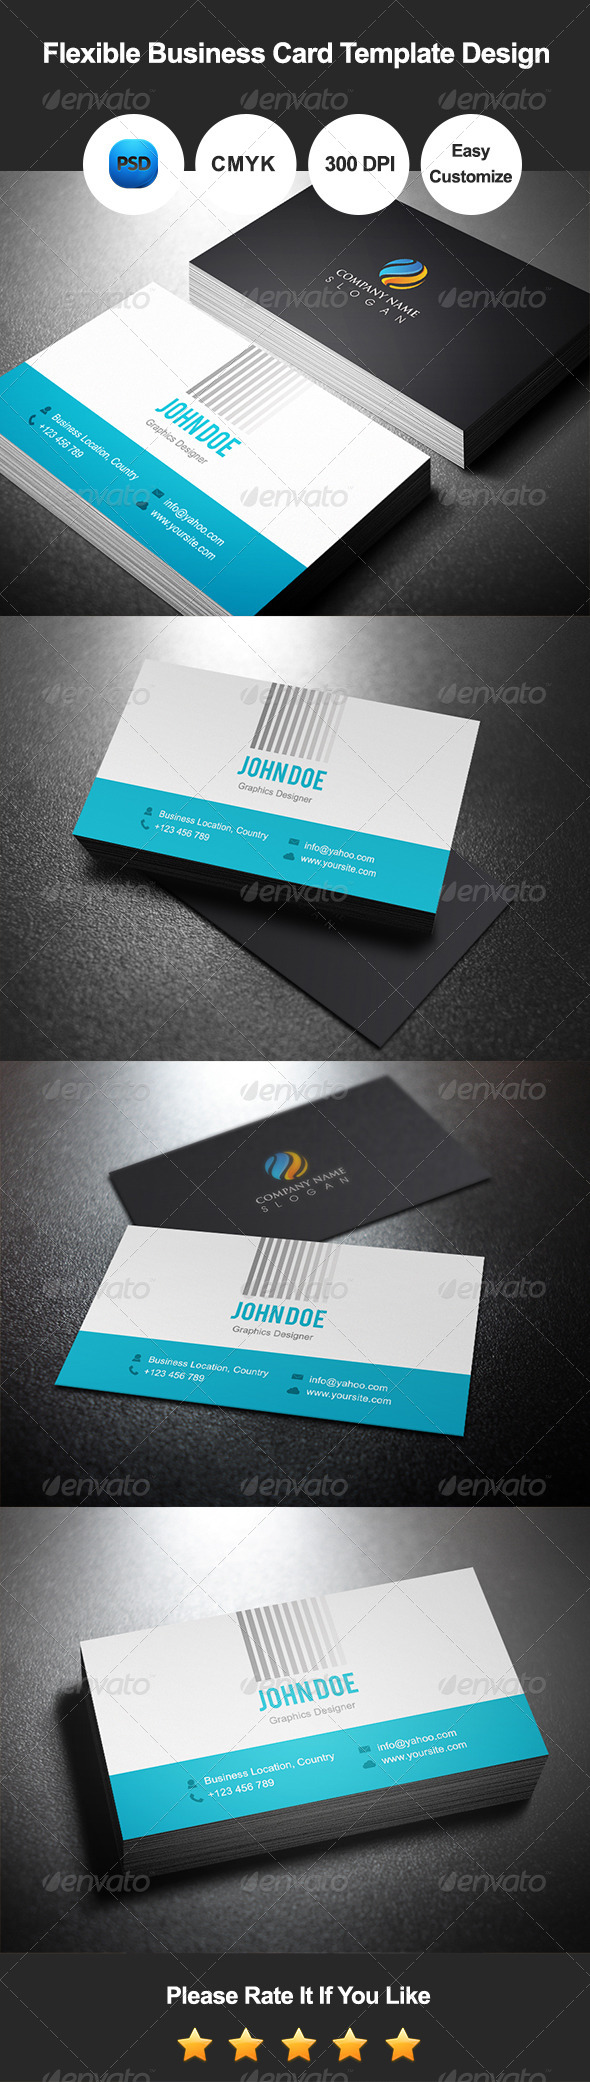 Flexible Business Card Template Design - Corporate Business Cards